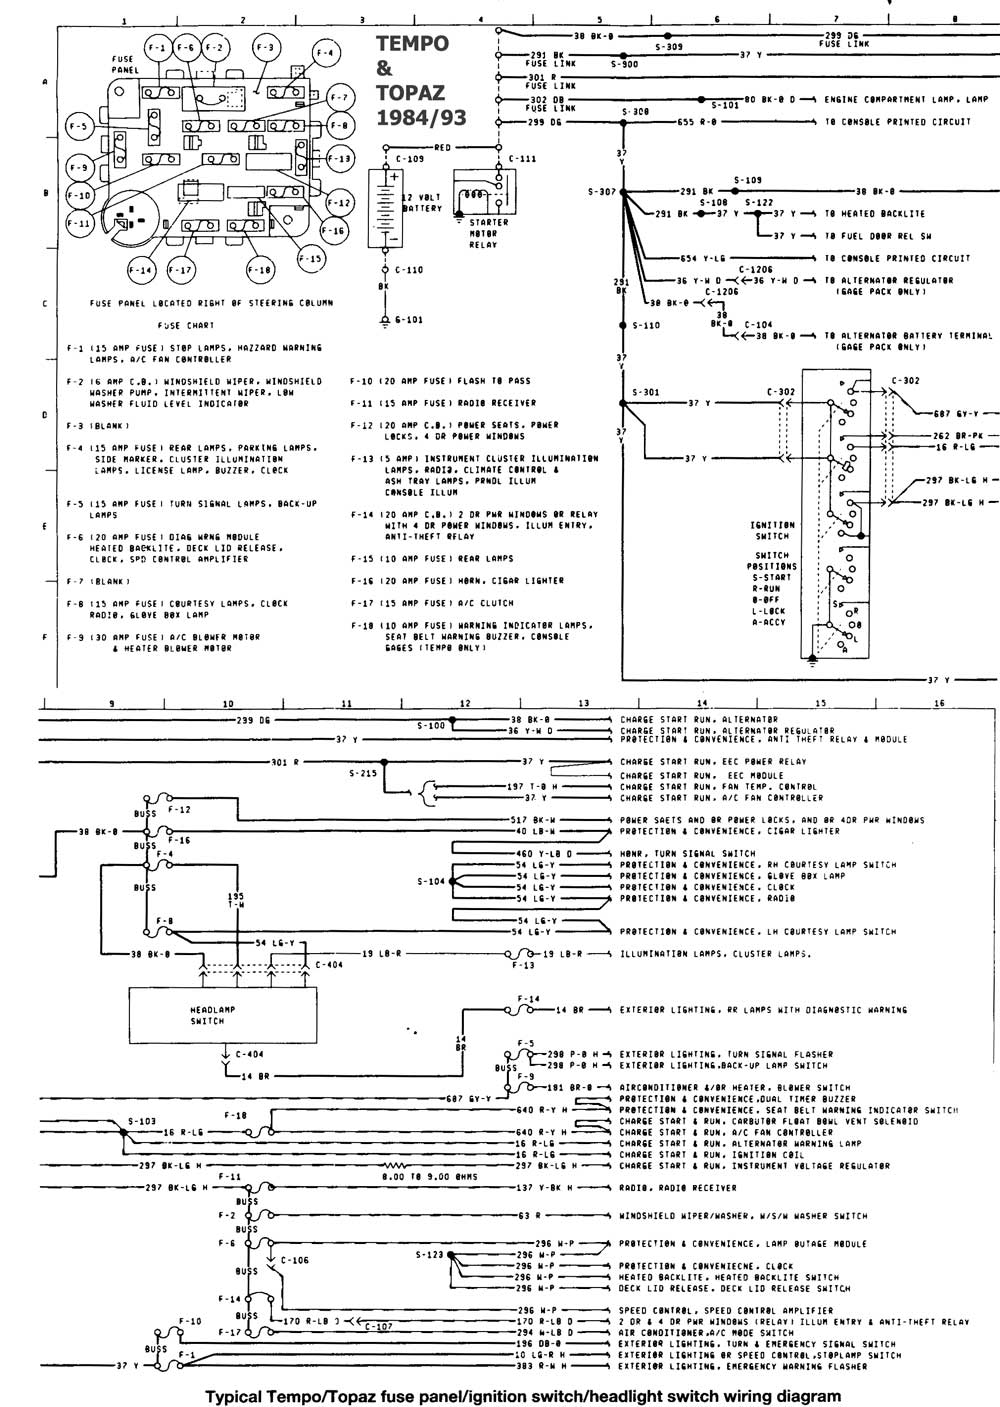 92 Ford Ranger Fuse Box Wiring Library 2004 Block Diagram Diagrama De Transmision Manual Explore 1992 Aerostar 2002 F250